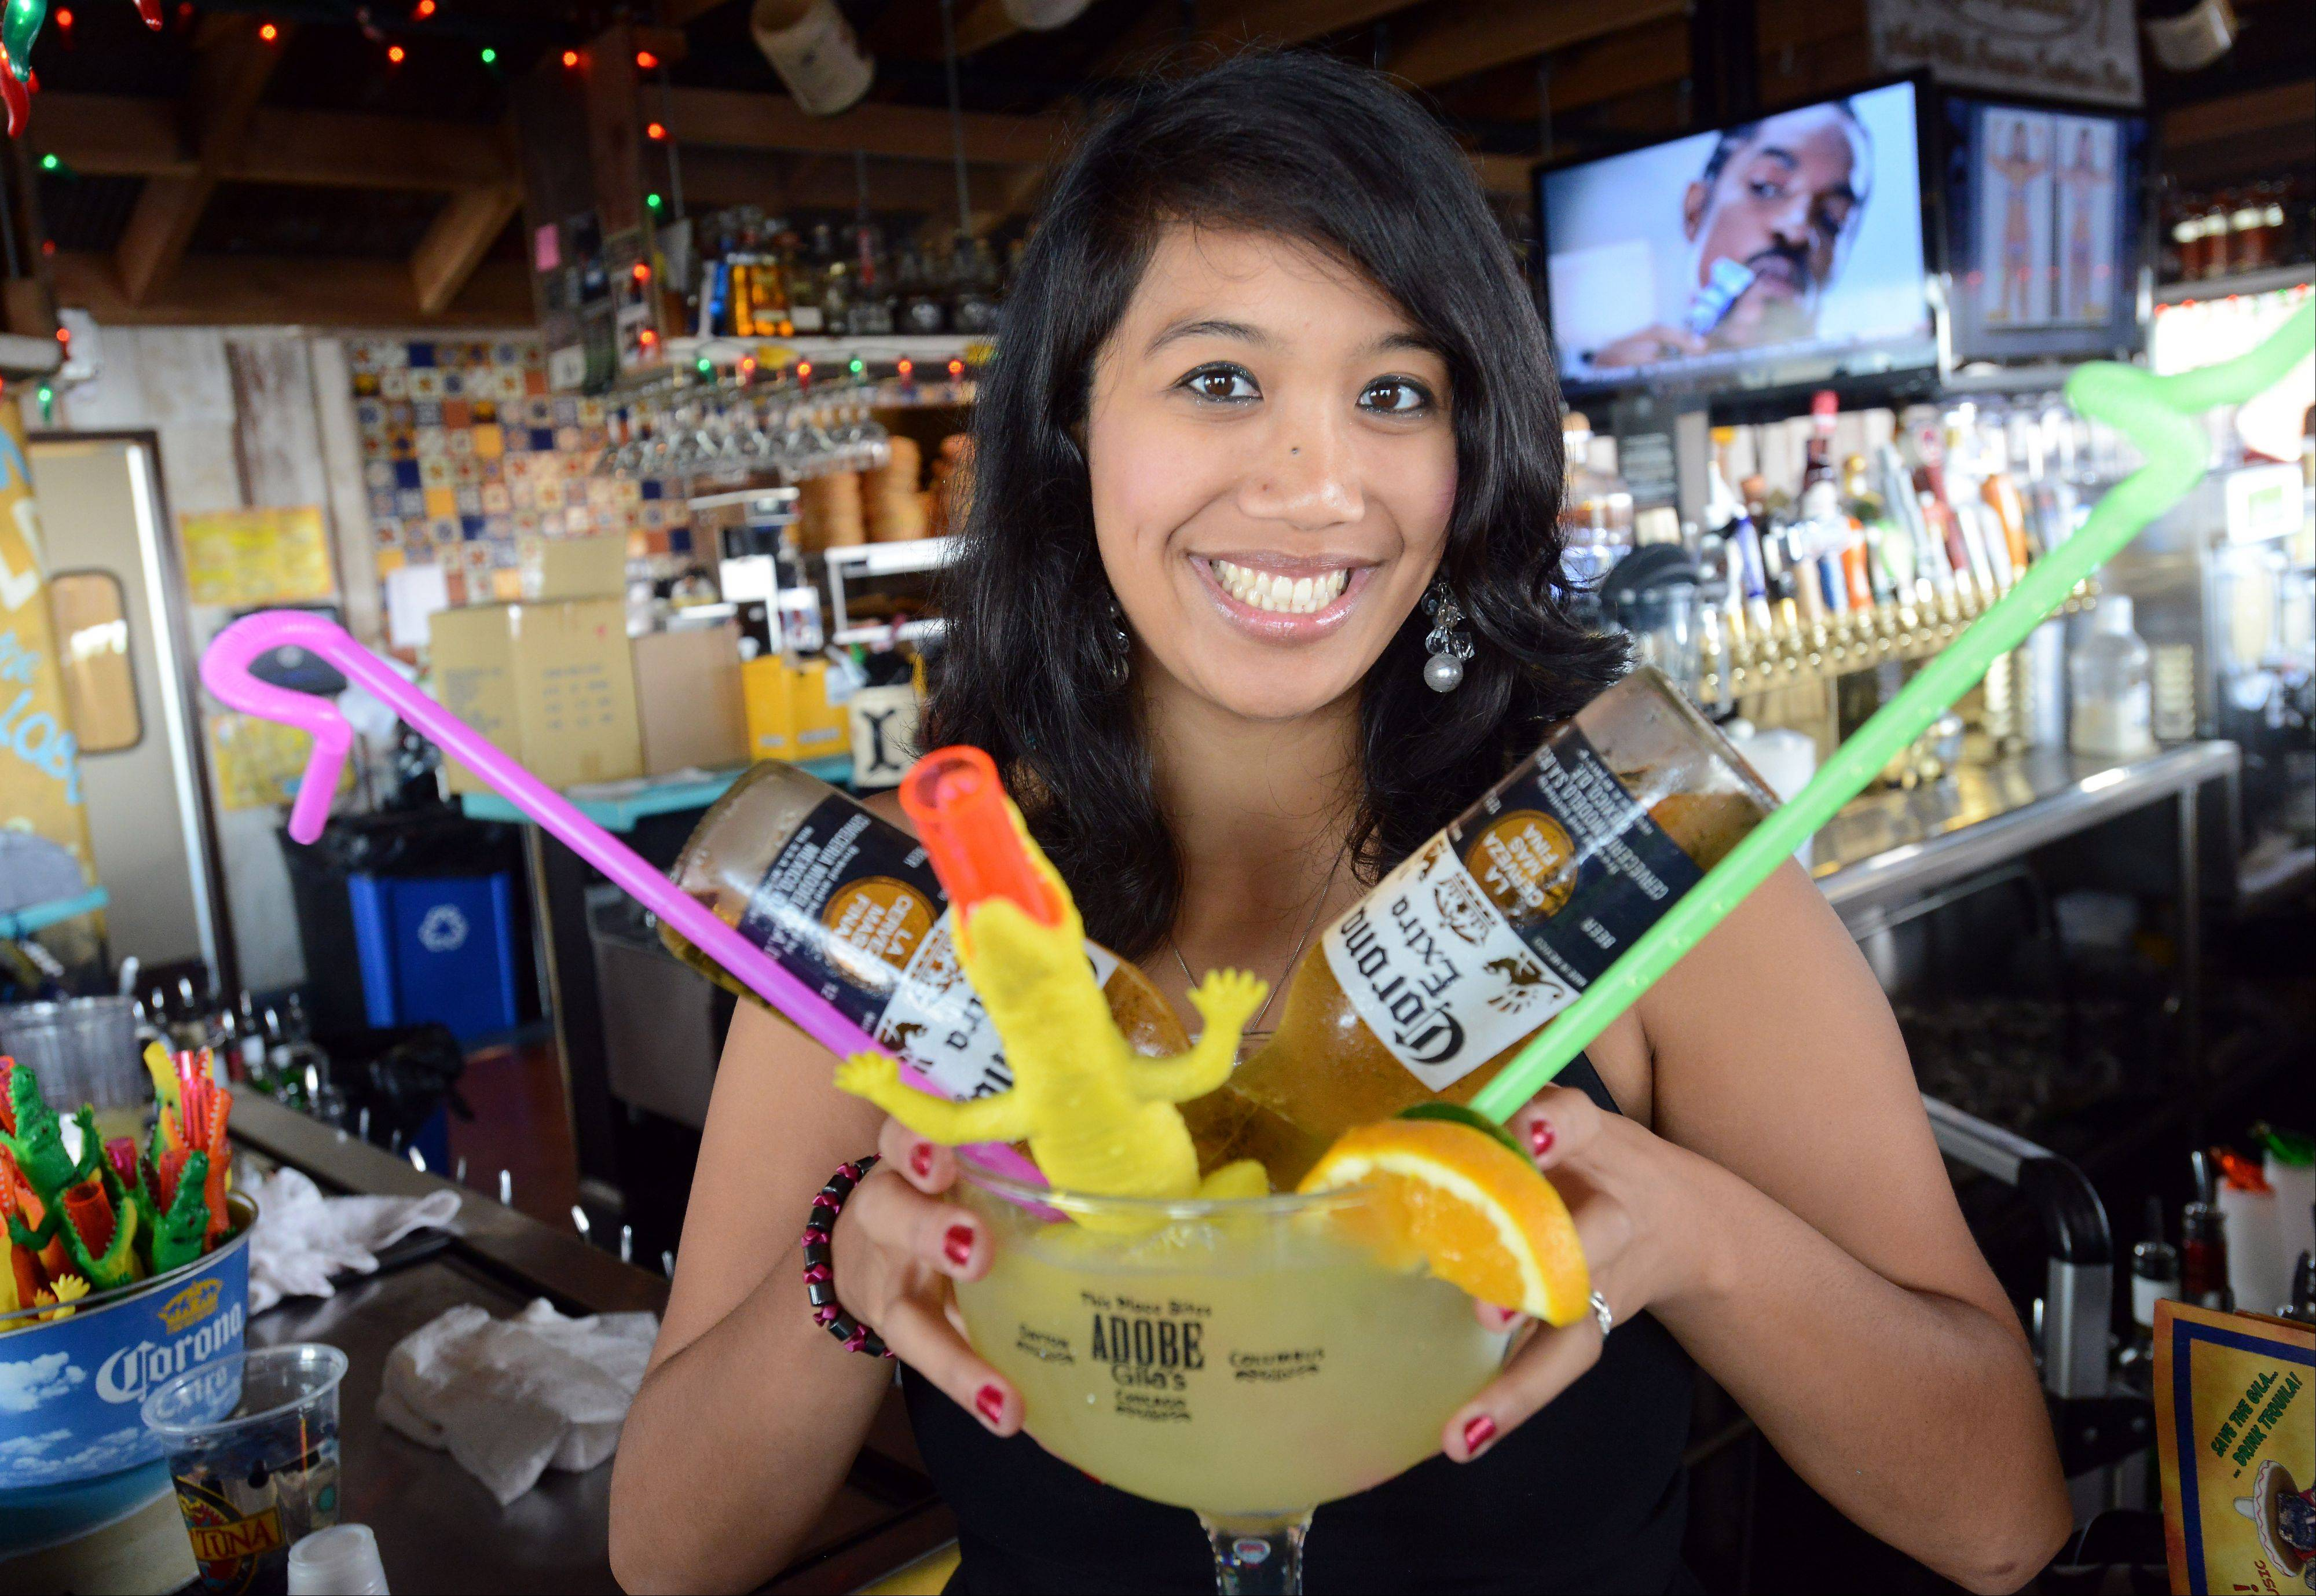 Bartender Cheryl Yu serves up mongo margaritas at Adobe Gila's in Rosemont.